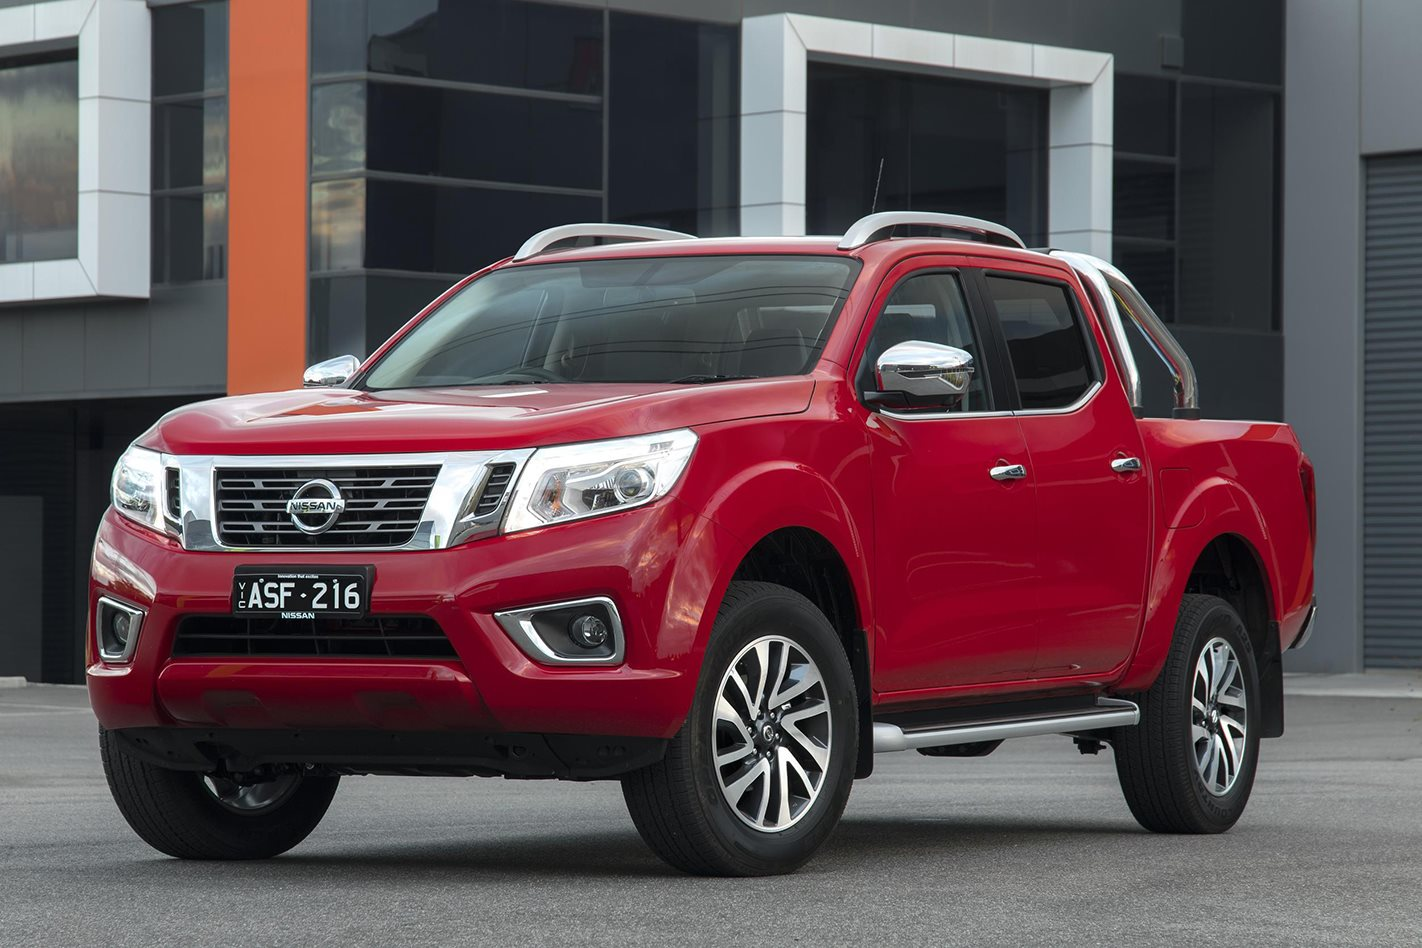 Nissan Navara Review, Price & Features